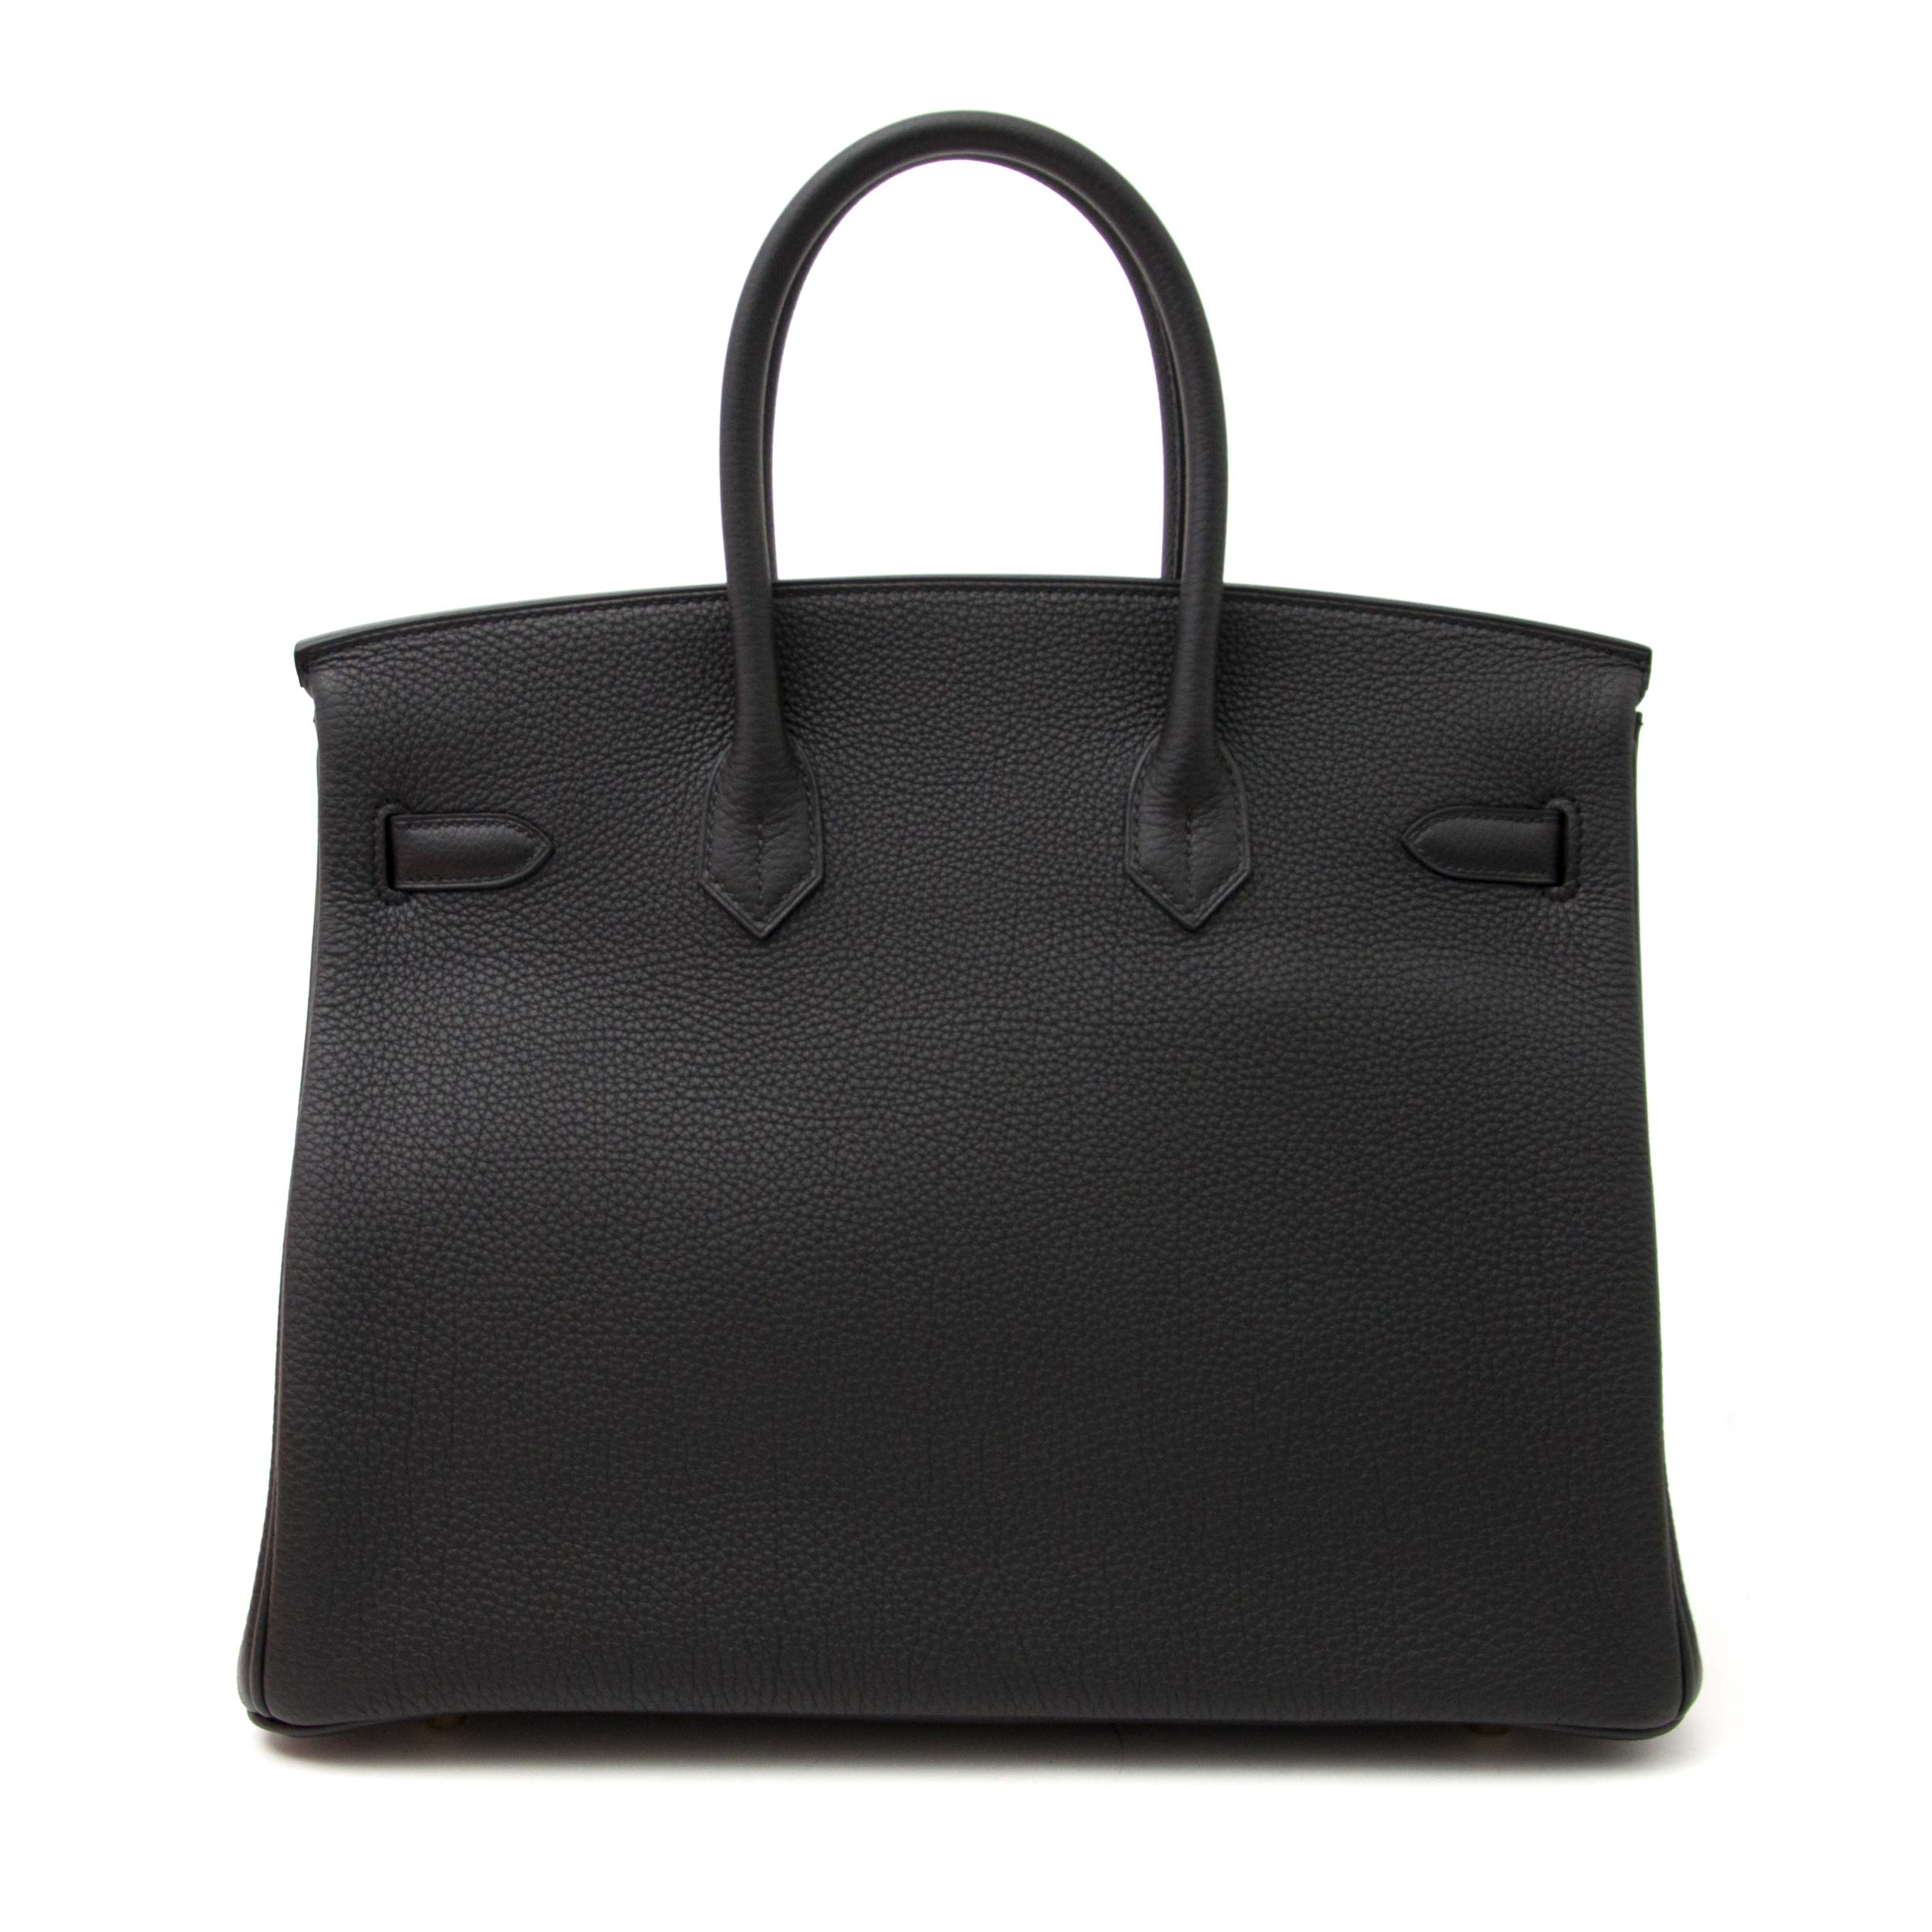 Labellov sells this Hermès Birkin 35 Togo Noir GHW, worldwide shipping and safe - secure shopping. Labellov sells a lot of Hermès Birkin bags and other designer items.